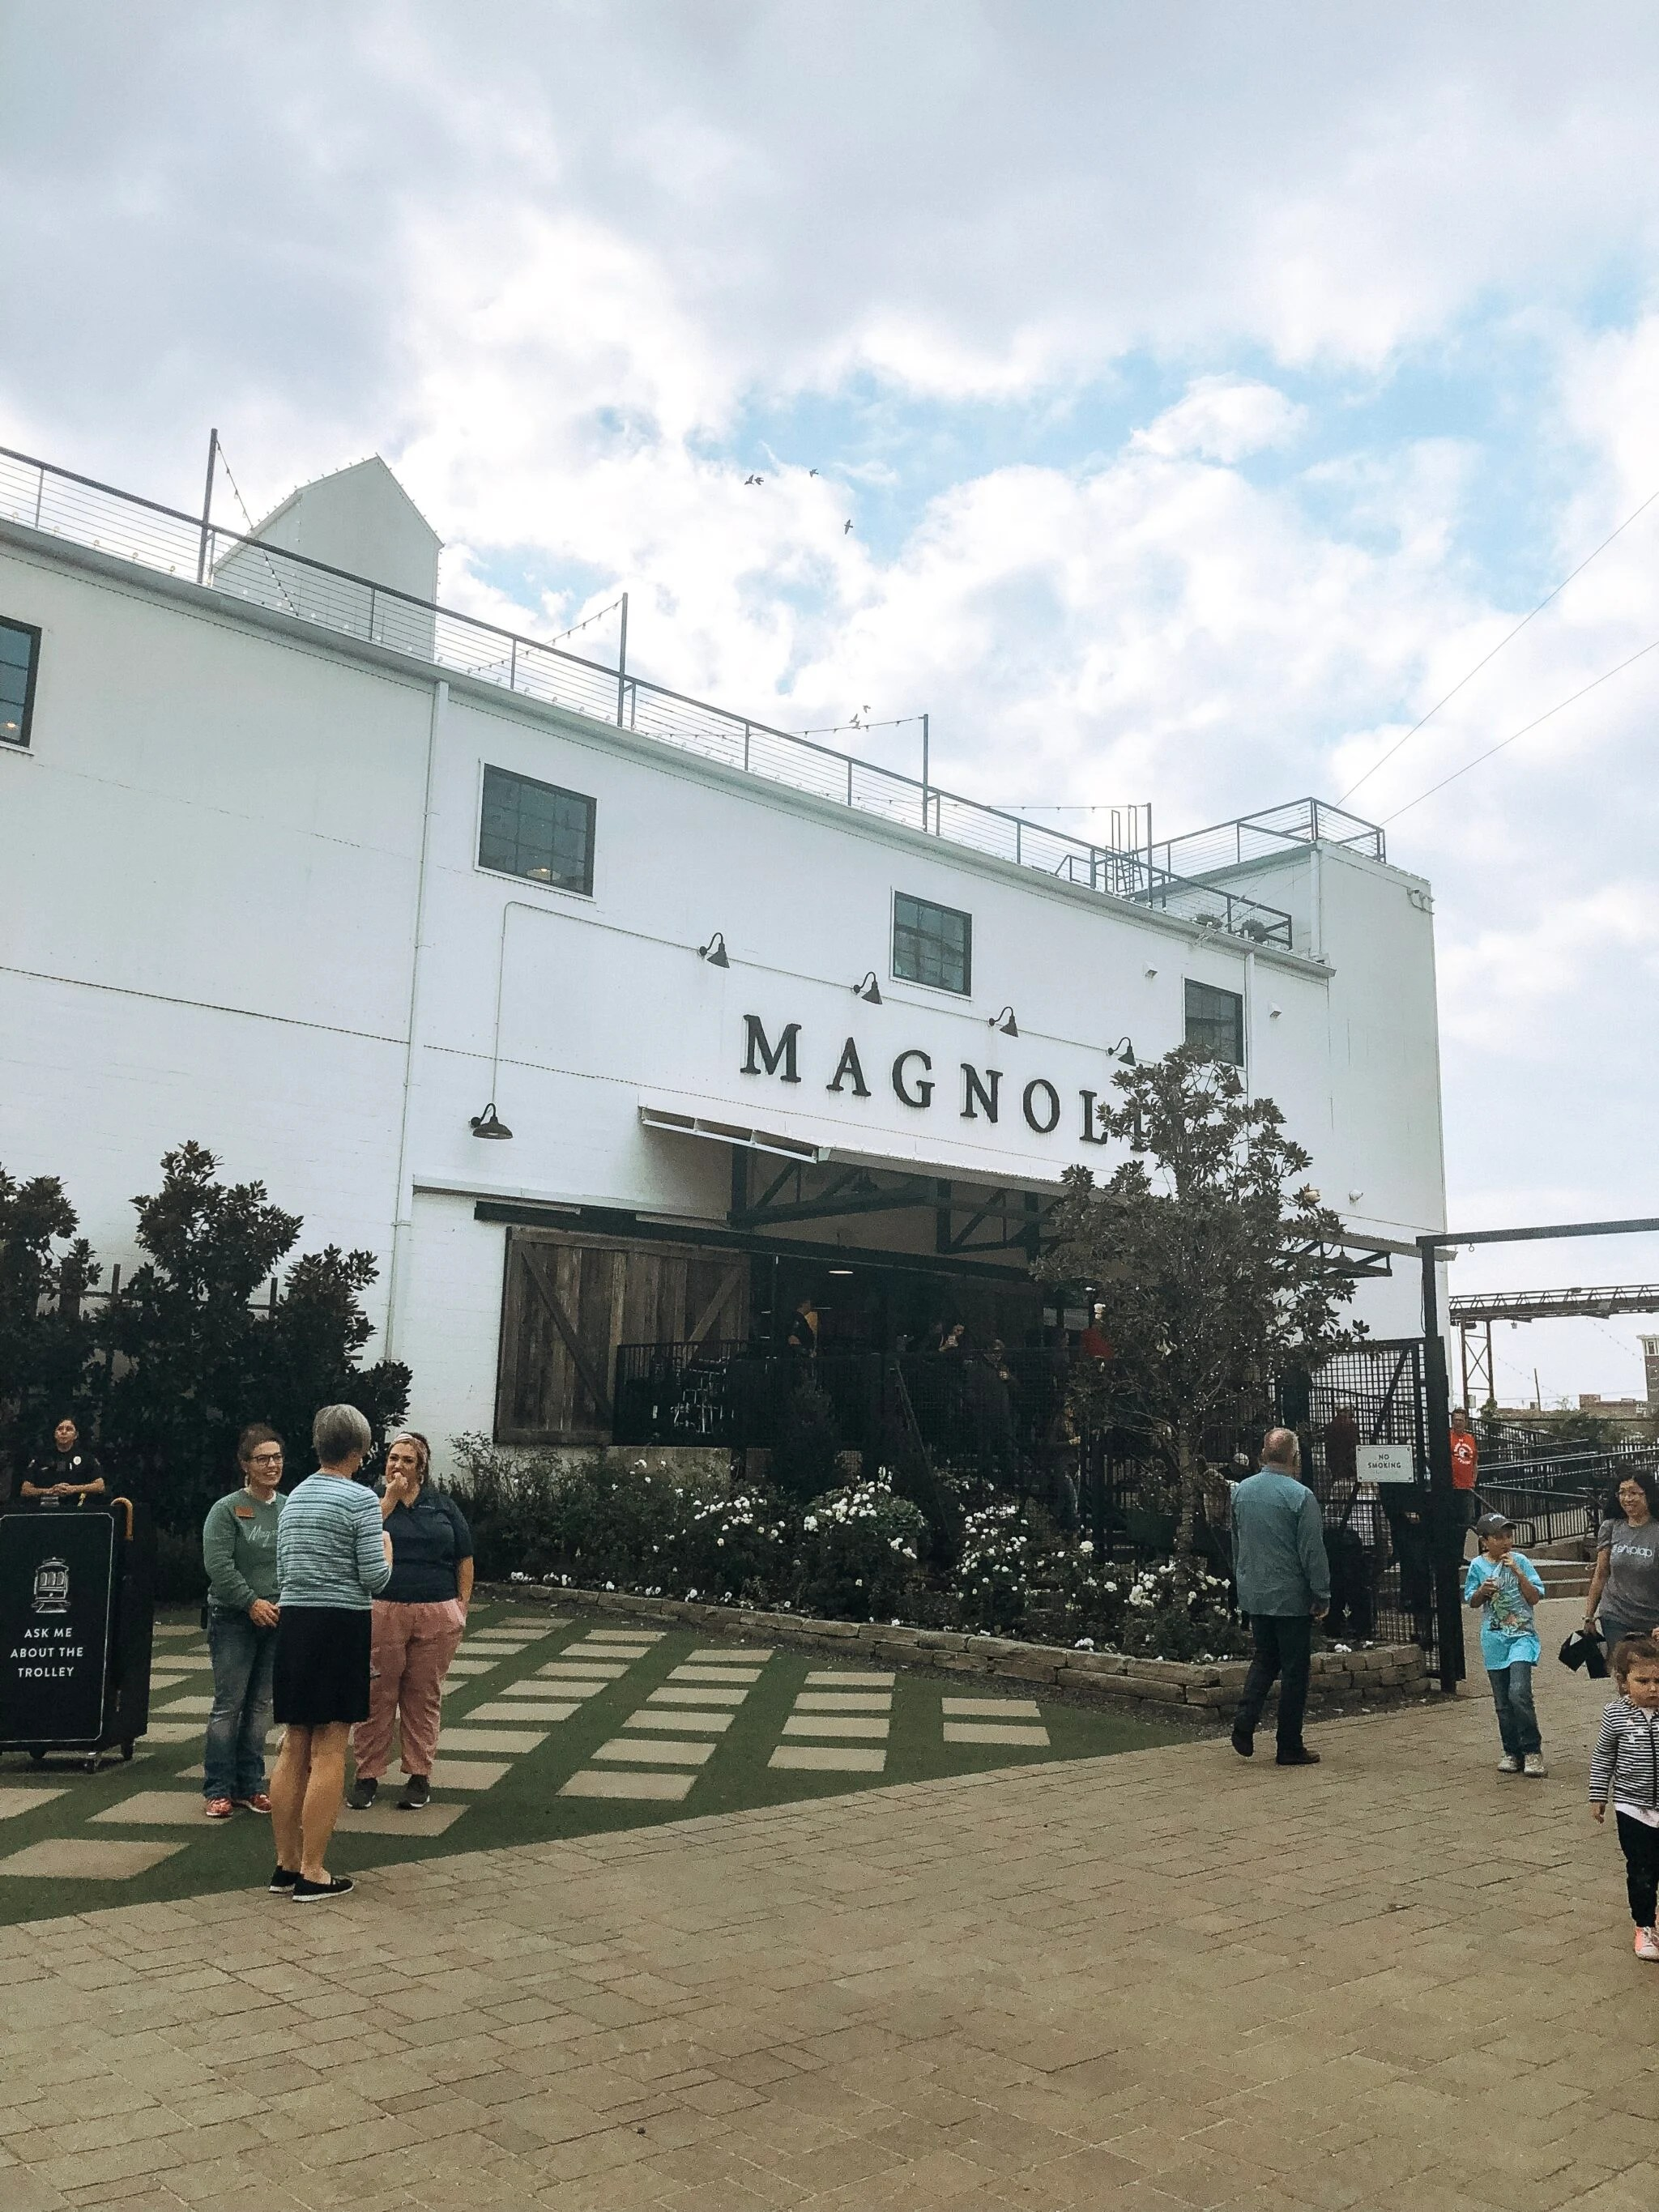 hotels in Waco tx near magnolia market